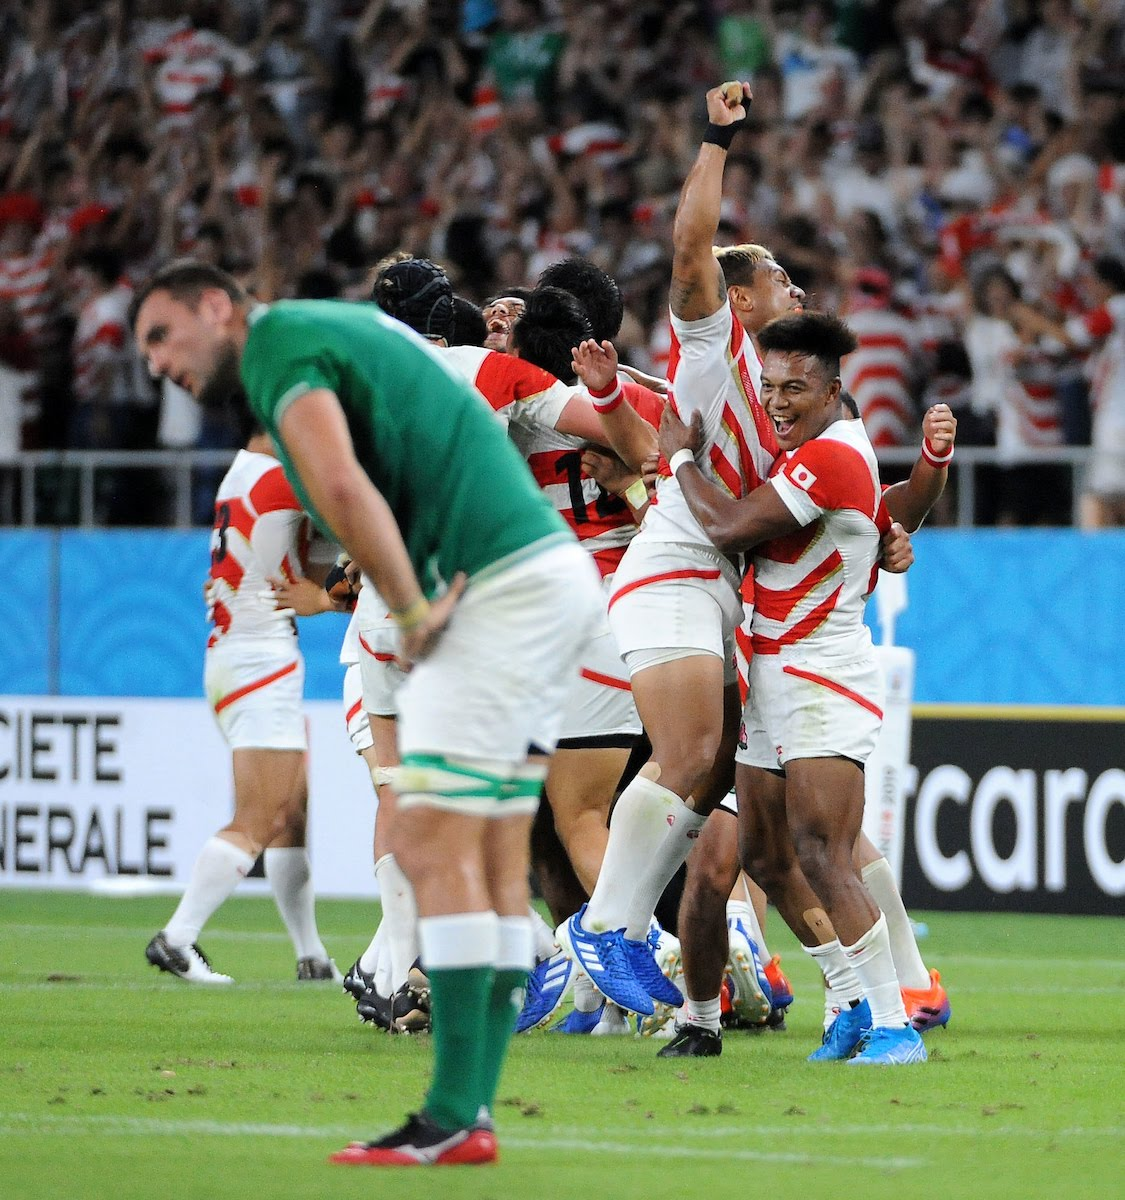 Japan celebrate scoring a try against Ireland in the 2019 Rugby World Cup